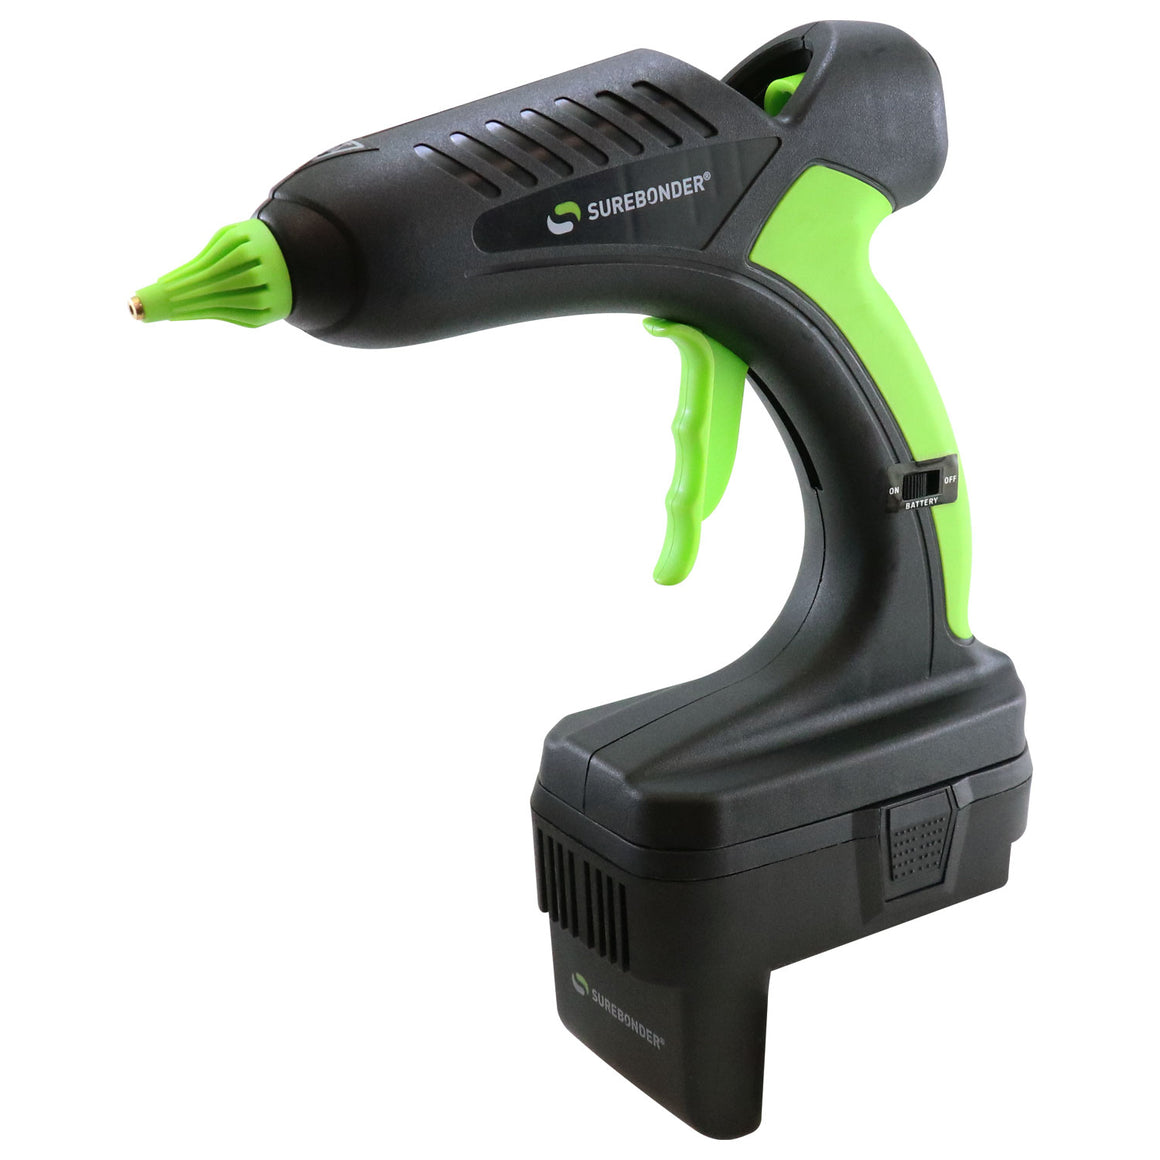 PRO2-60DEW 60 Watt 20 Volt Cordless Professional Heavy Duty Full Size Hot Glue Gun - Dewalt® Version - Surebonder